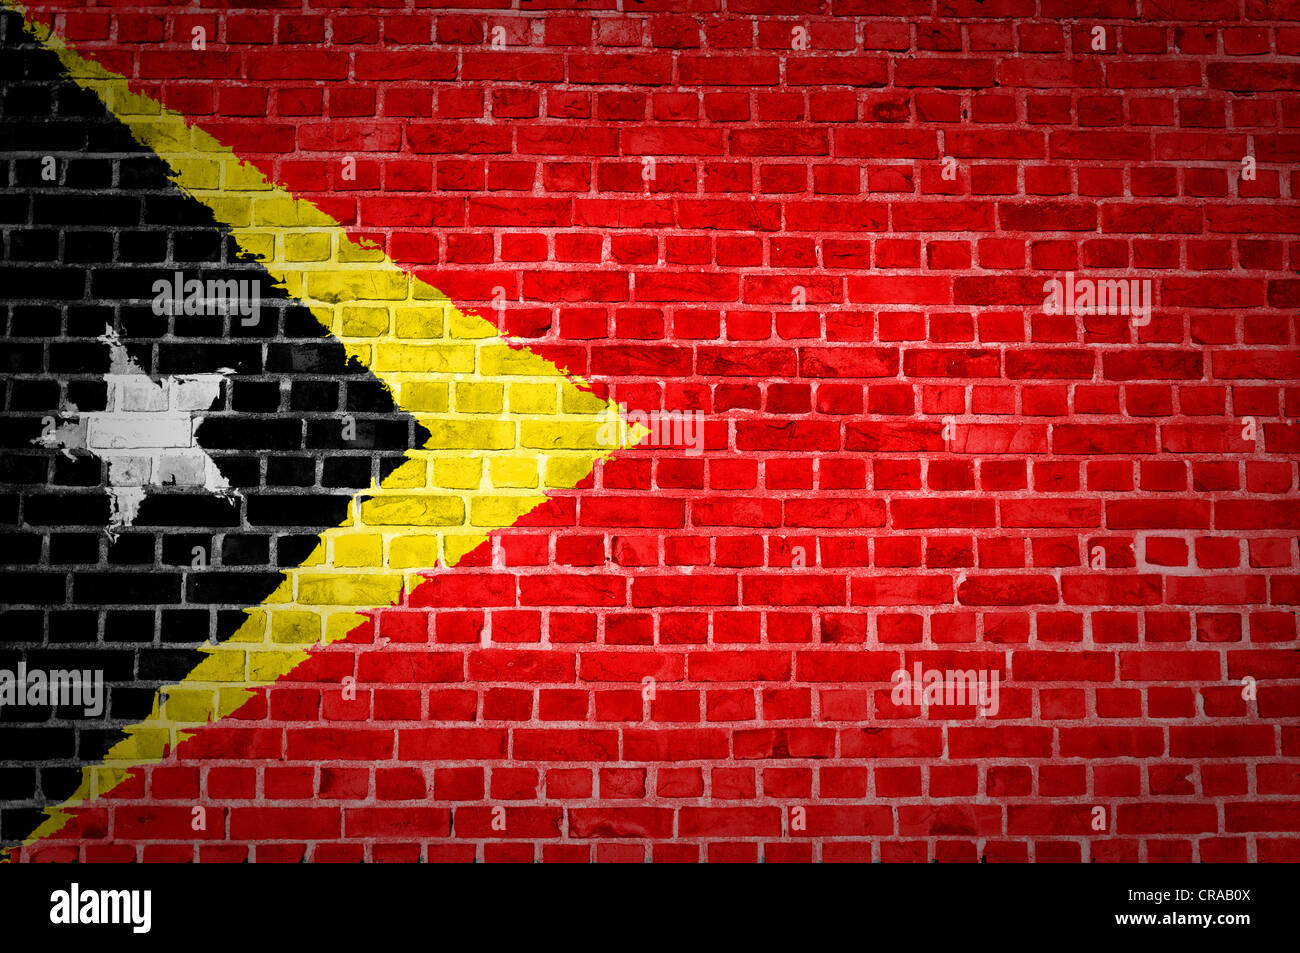 An image of the Timor-Leste flag painted on a brick wall in an urban location Stock Photo